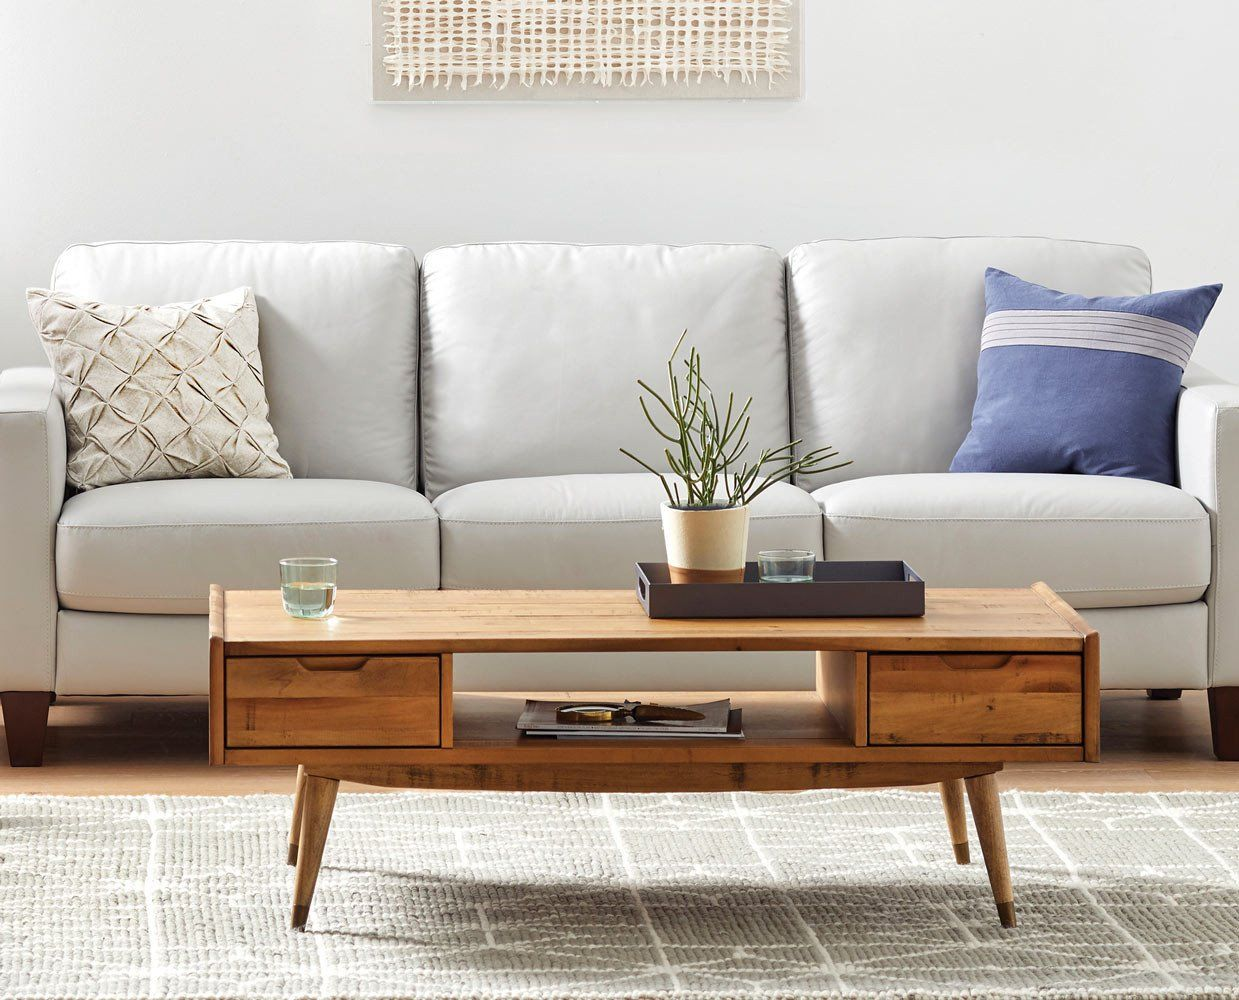 Pin By Dania Furniture On Oceano Bedroom Mid Century Modern Coffee Table Mid Century Coffee Table Coffee Table [ 1000 x 1239 Pixel ]